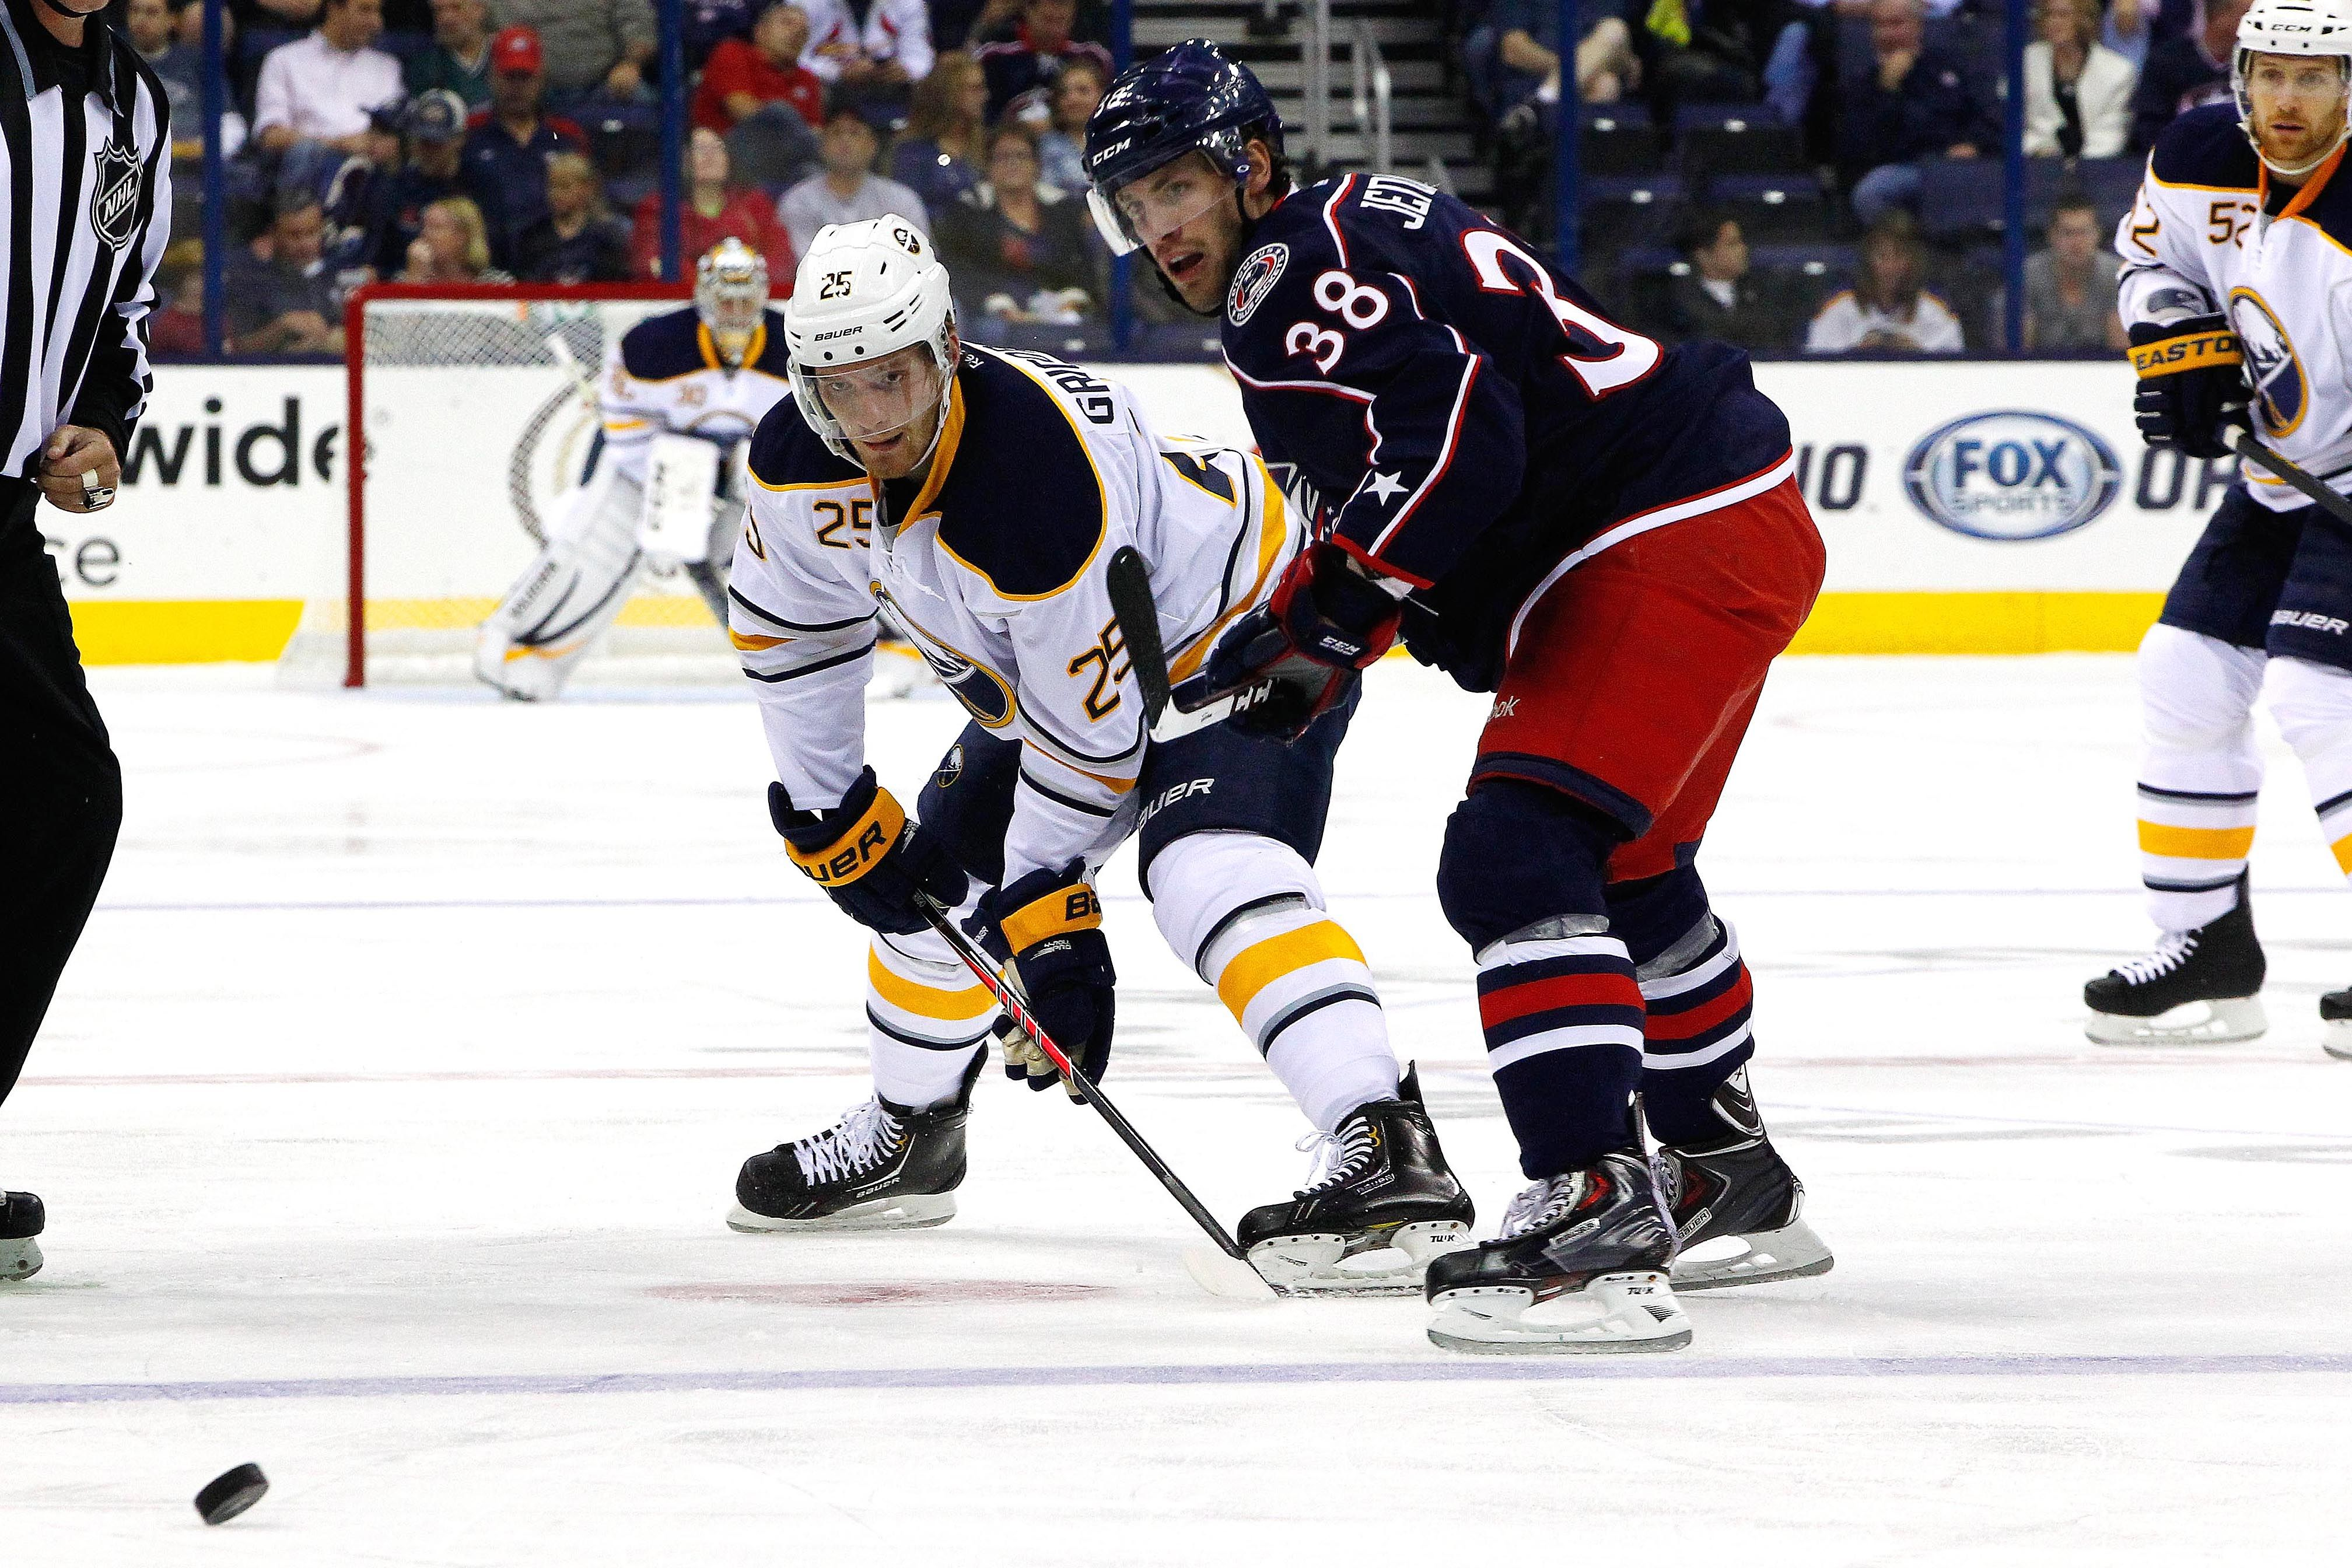 CrowdCam Hot Shot: Columbus Blue Jackets forward Boone Jenner and Buffalo Sabres center Mikhail Grigorenko faceoff during the first period at Nationwide Arena. Photo by Russell LaBounty